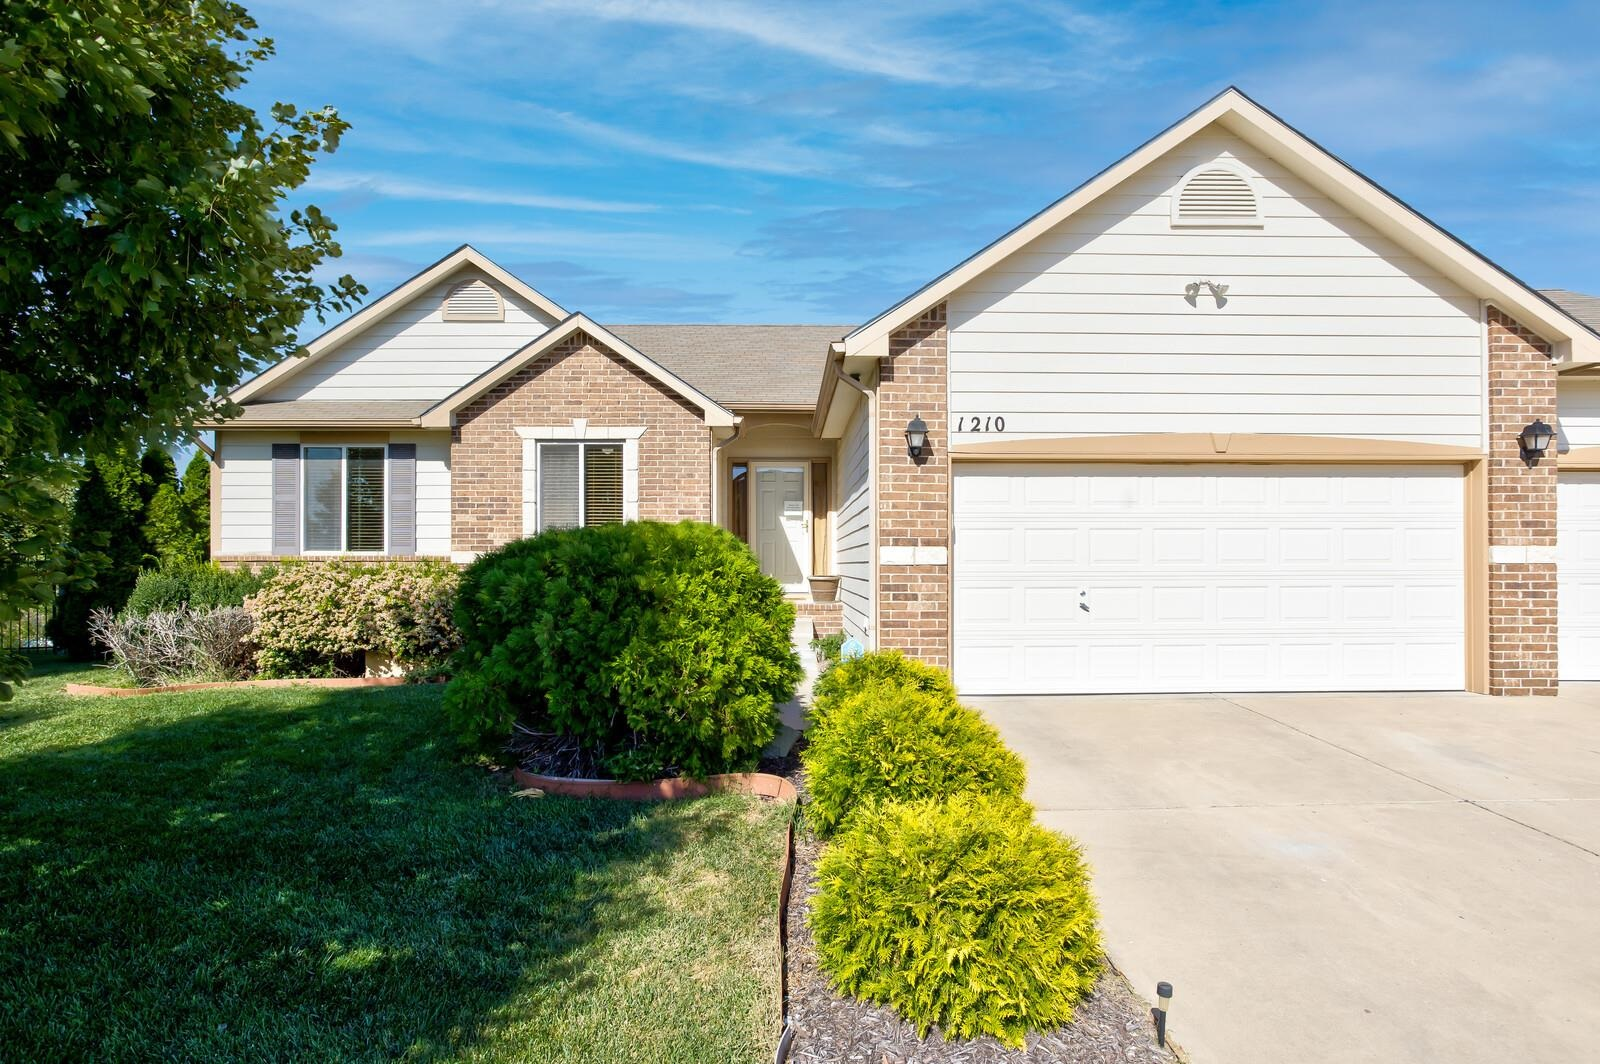 Check out this spacious home in the highly sought-after Village Estates neighborhood! One owner! No